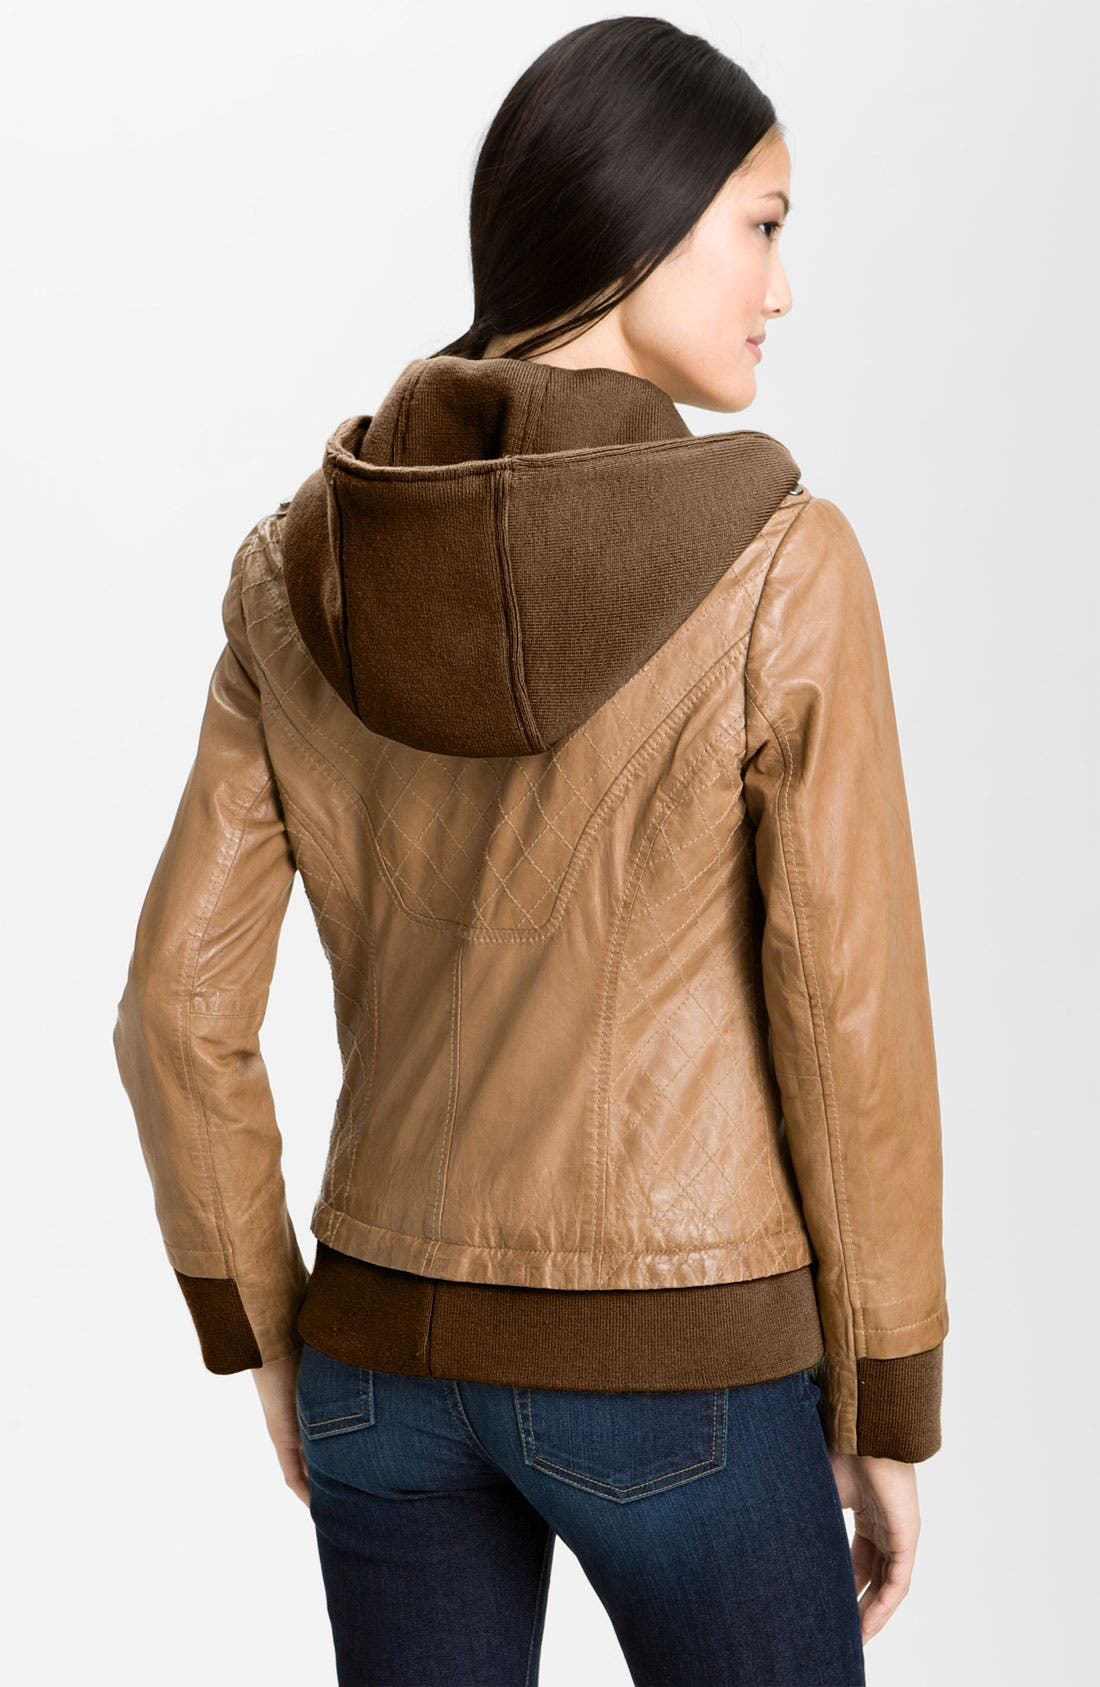 Alternate Image 3  - Bernardo Leather Bomber Jacket with Detachable Hoodie Liner